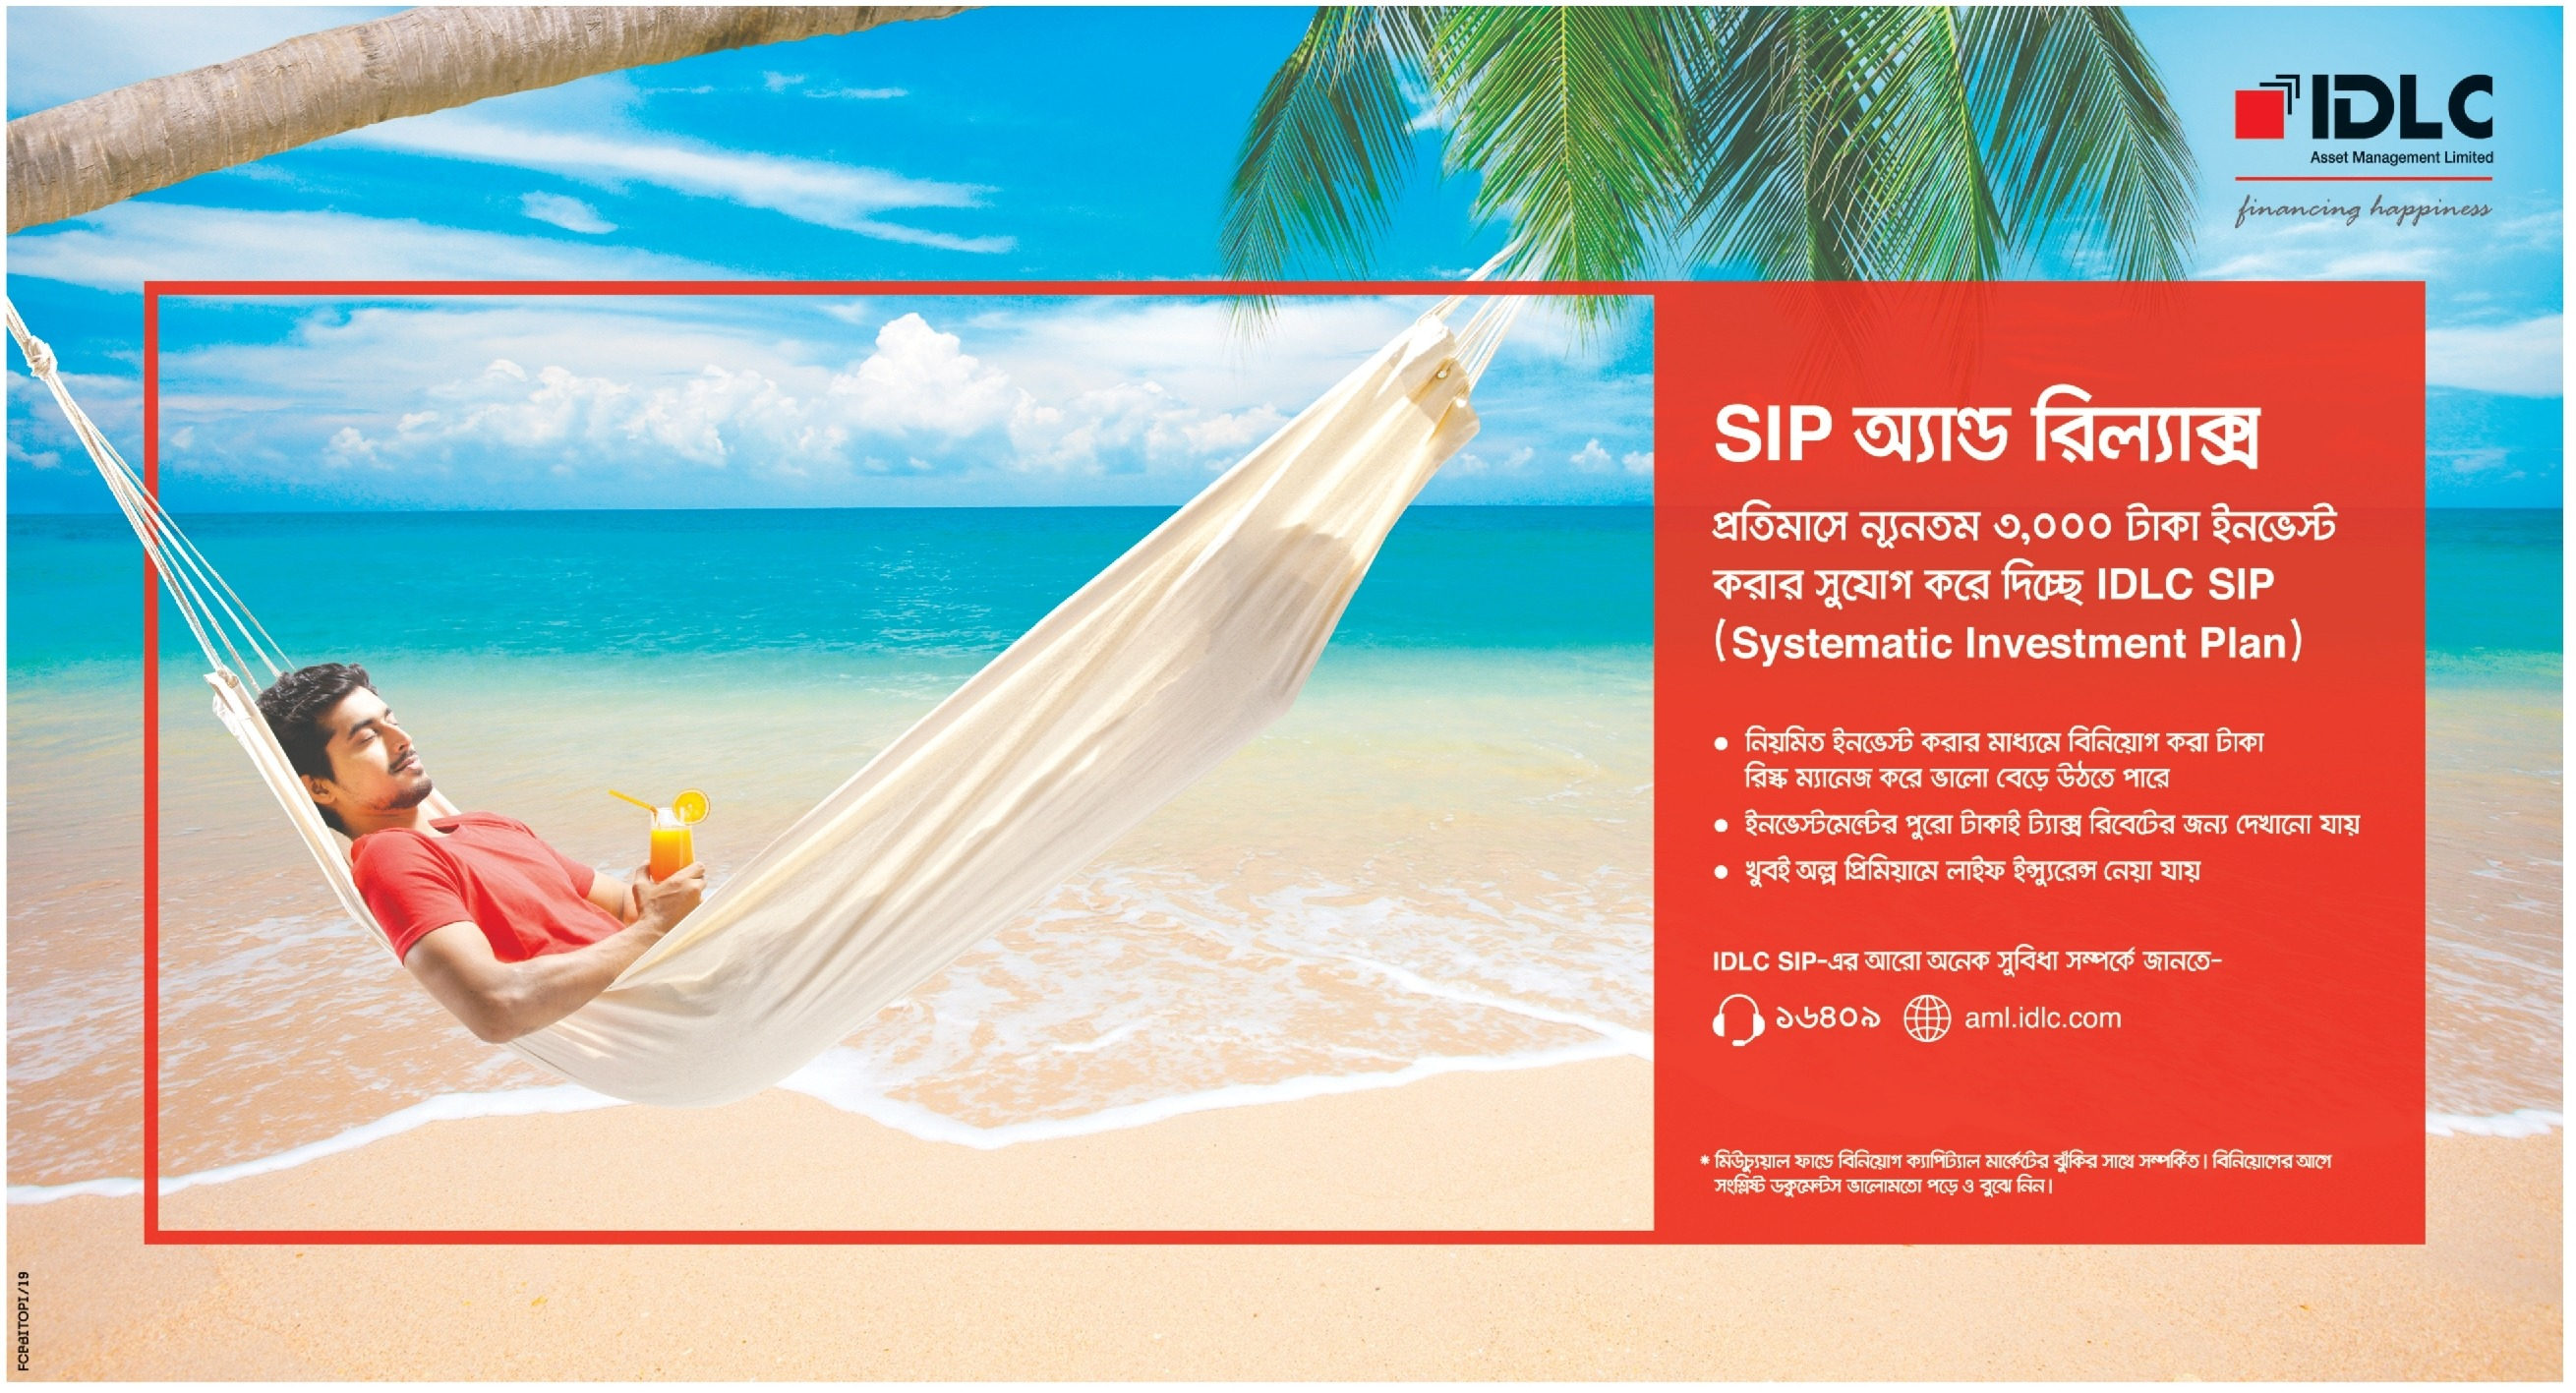 IDLC Systematic Investment Plan (SIP) Press Ad